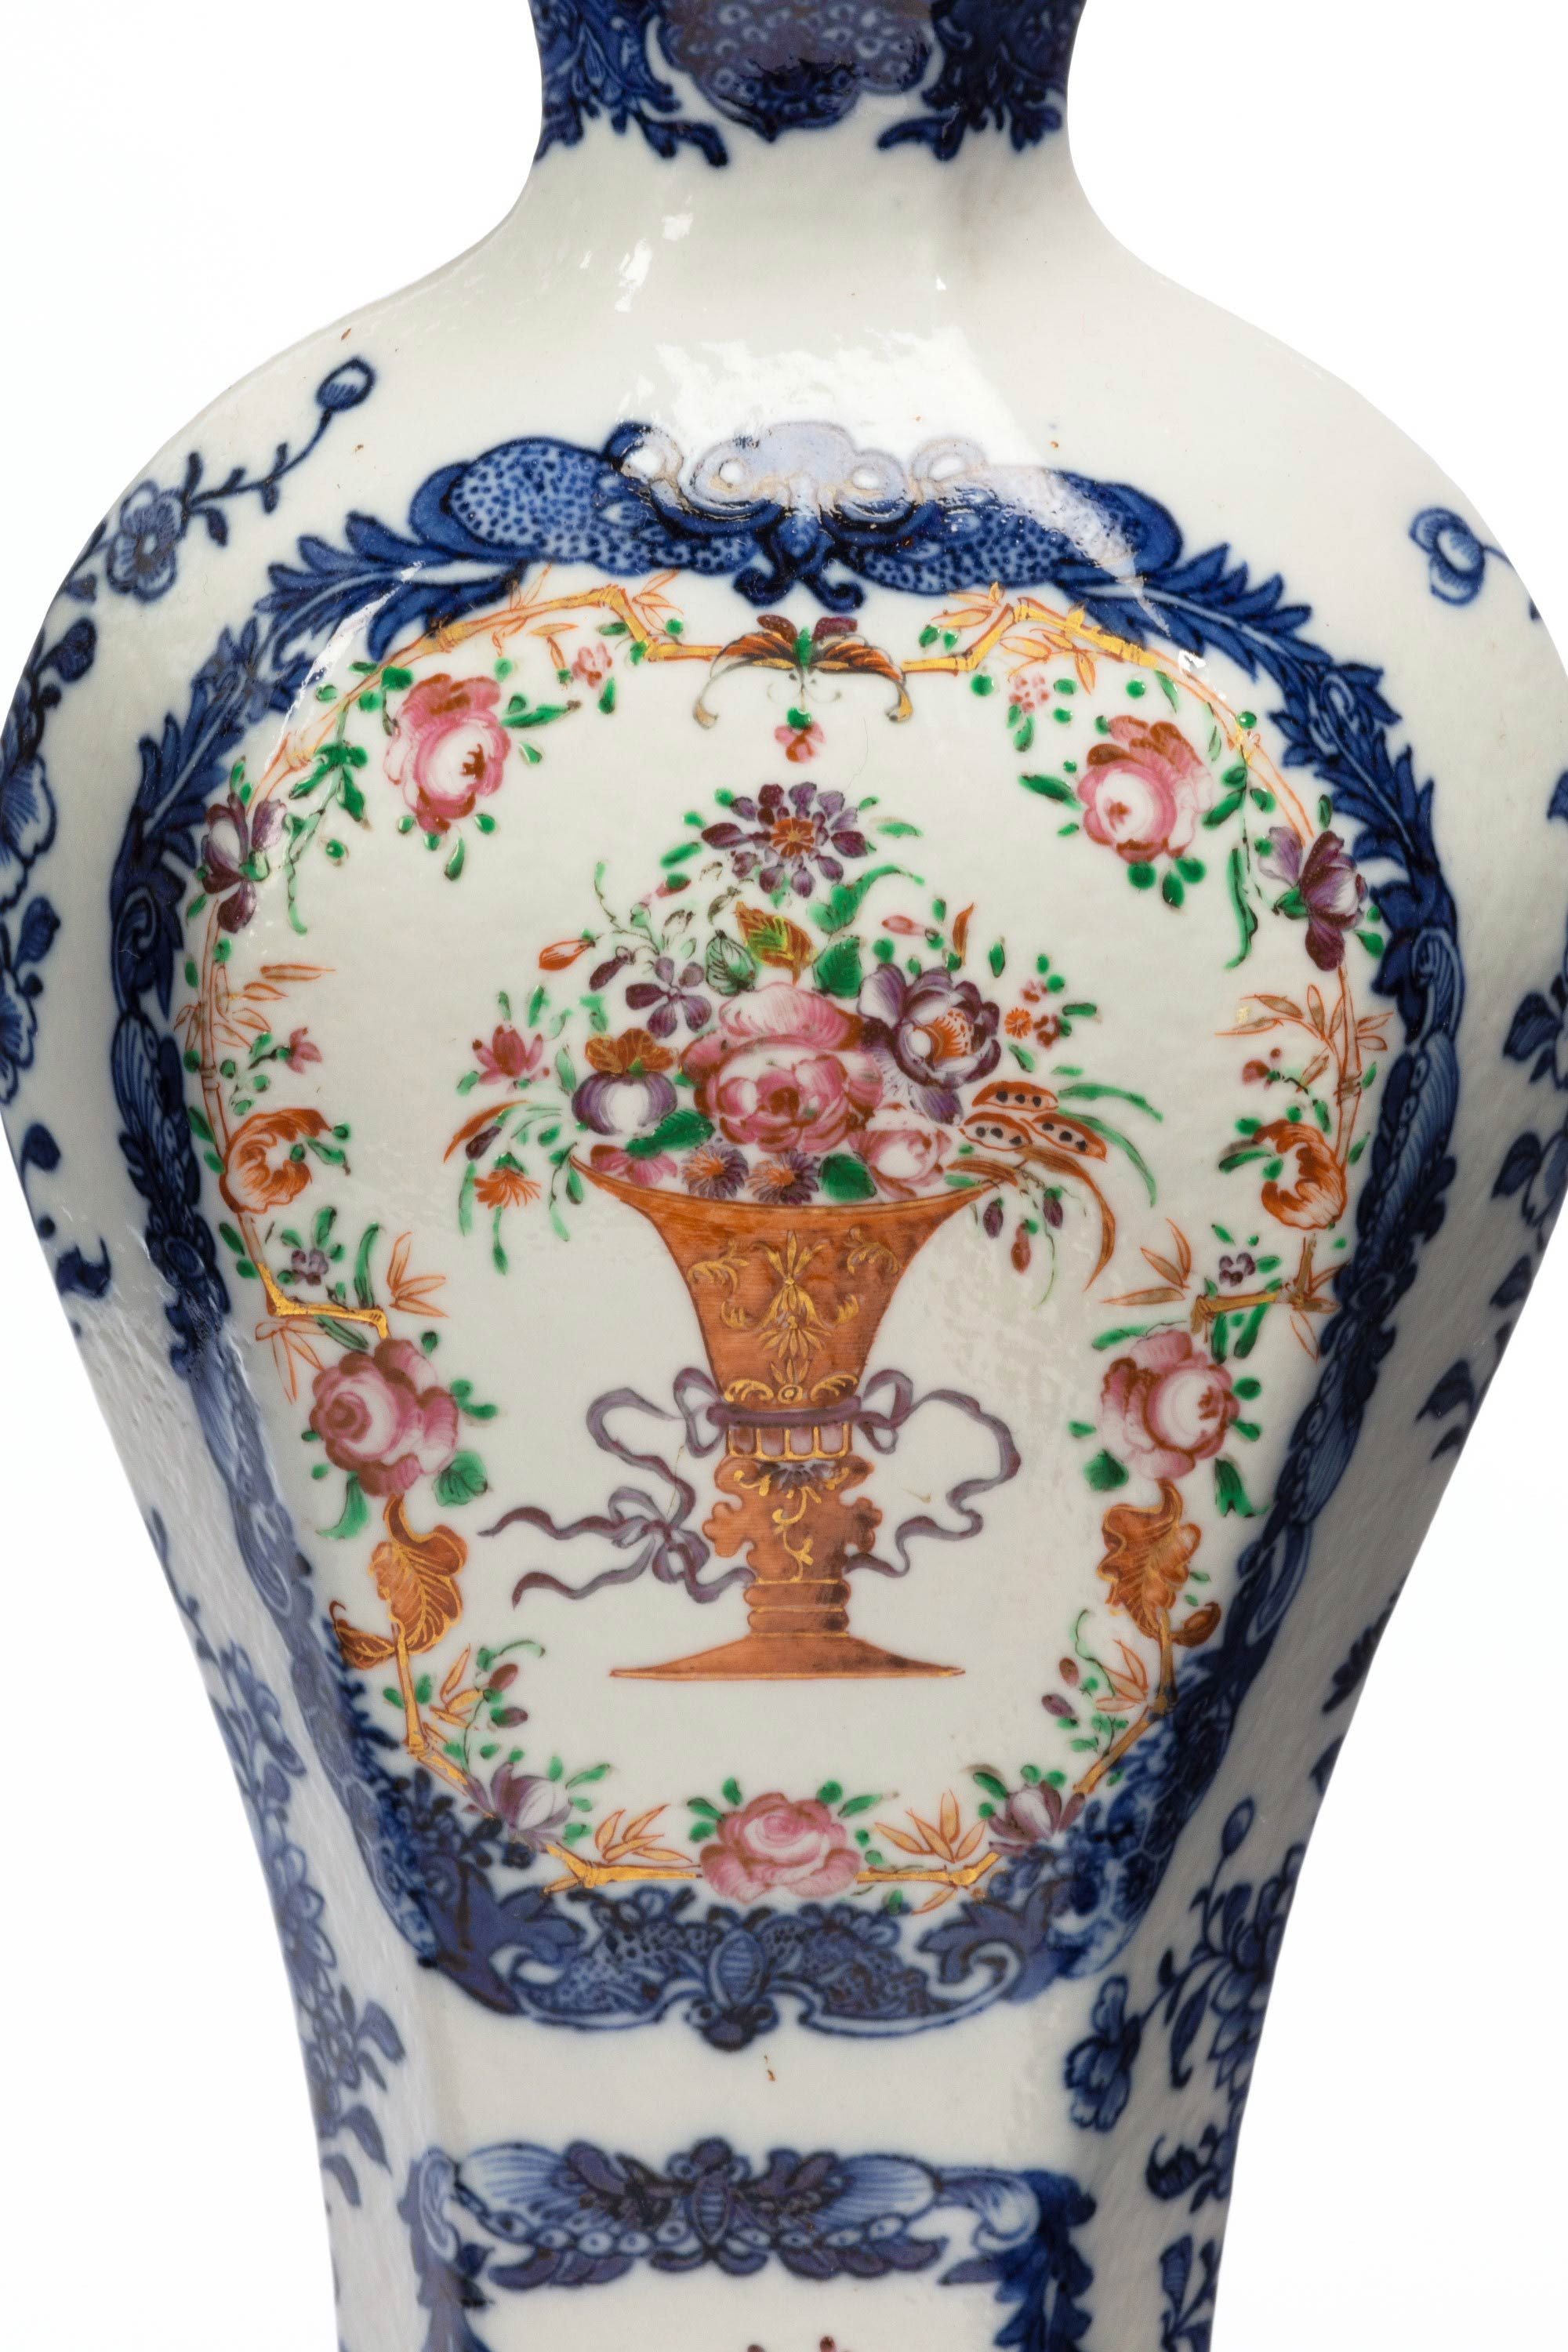 Chinese Cloisonne Enamel Vase Of Pair Of Qianlong Period Vases for Sale at 1stdibs In 8136 2 1 org